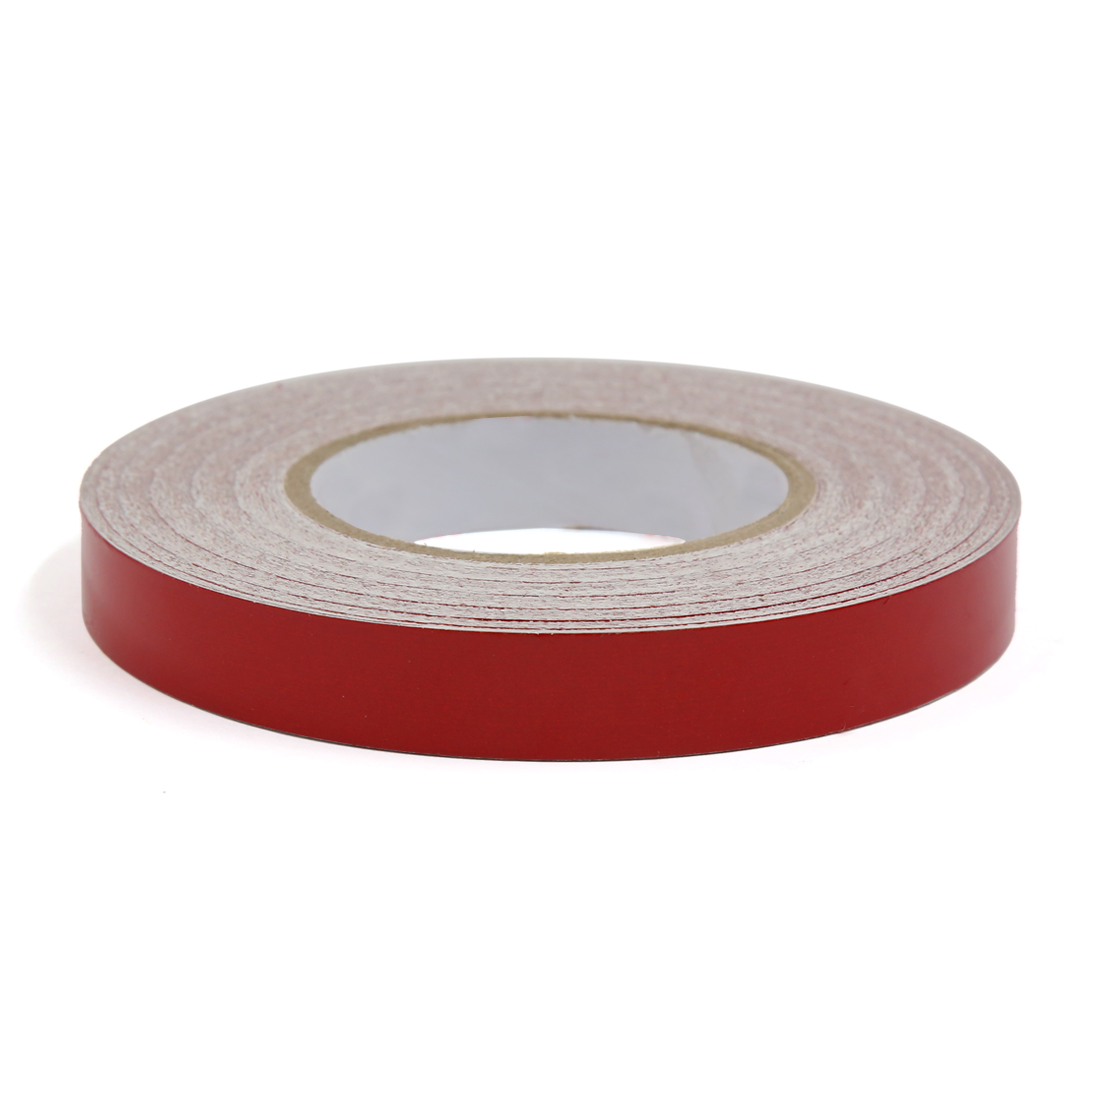 Red Vinyl Decor Adhesive Decal Reflective Tape Sticker Stripe for Car Motorcycle